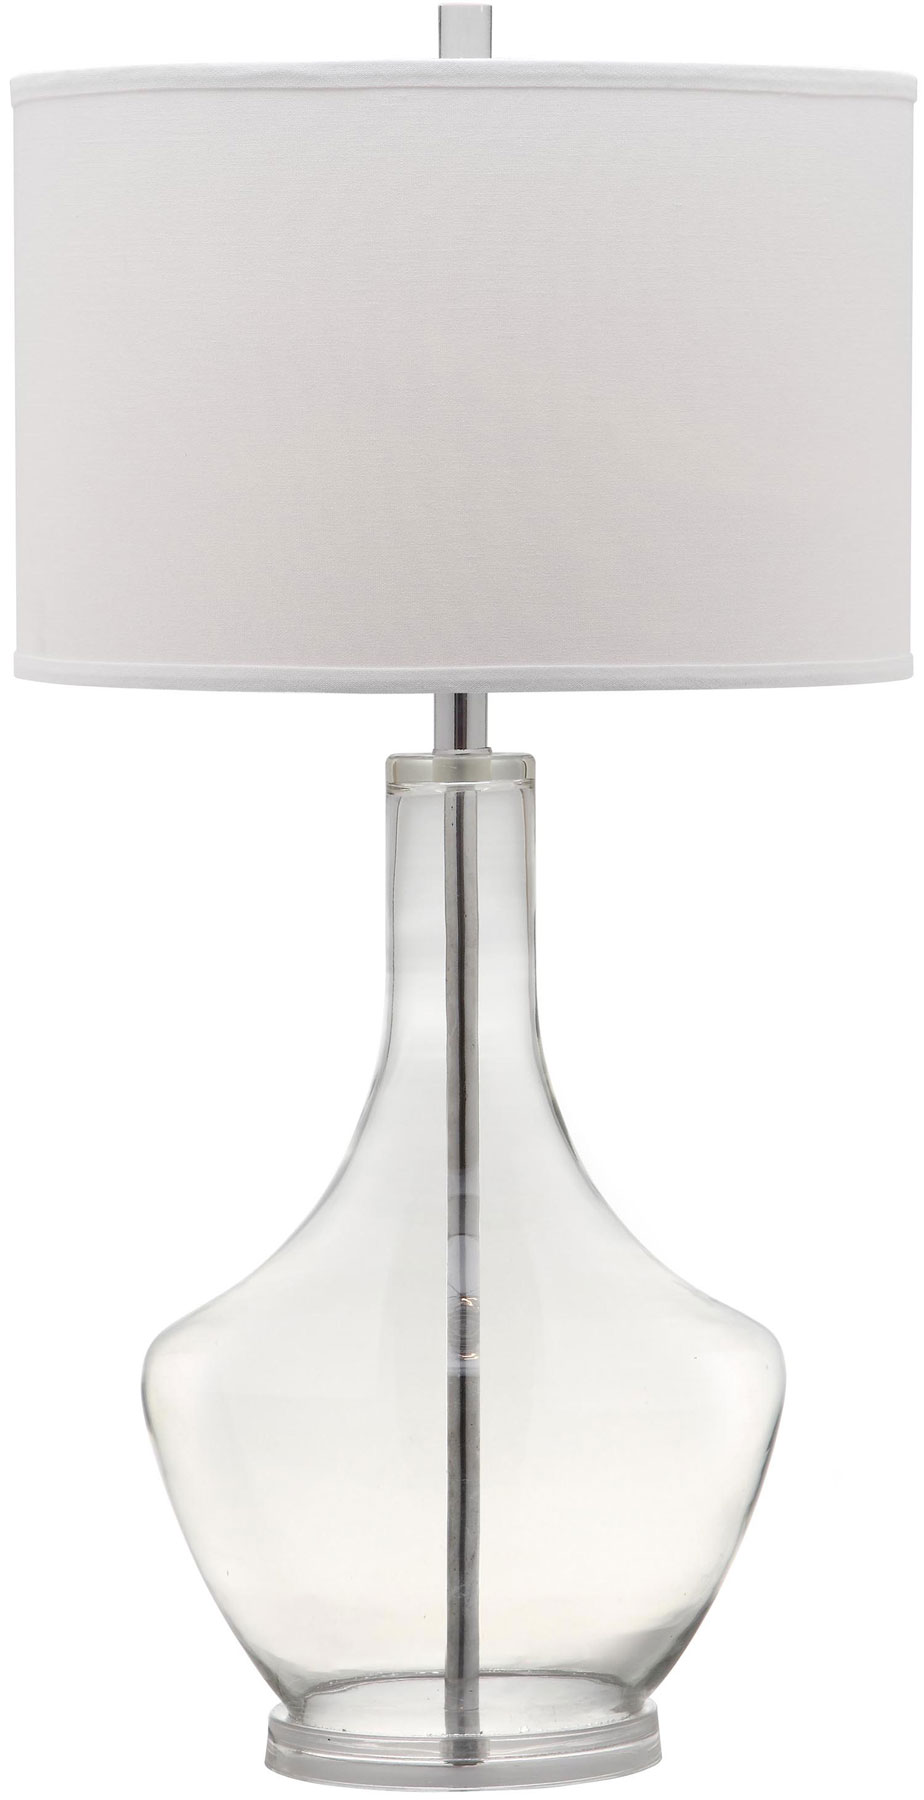 Image of: Lit4141d Table Lamps Lighting By Safavieh